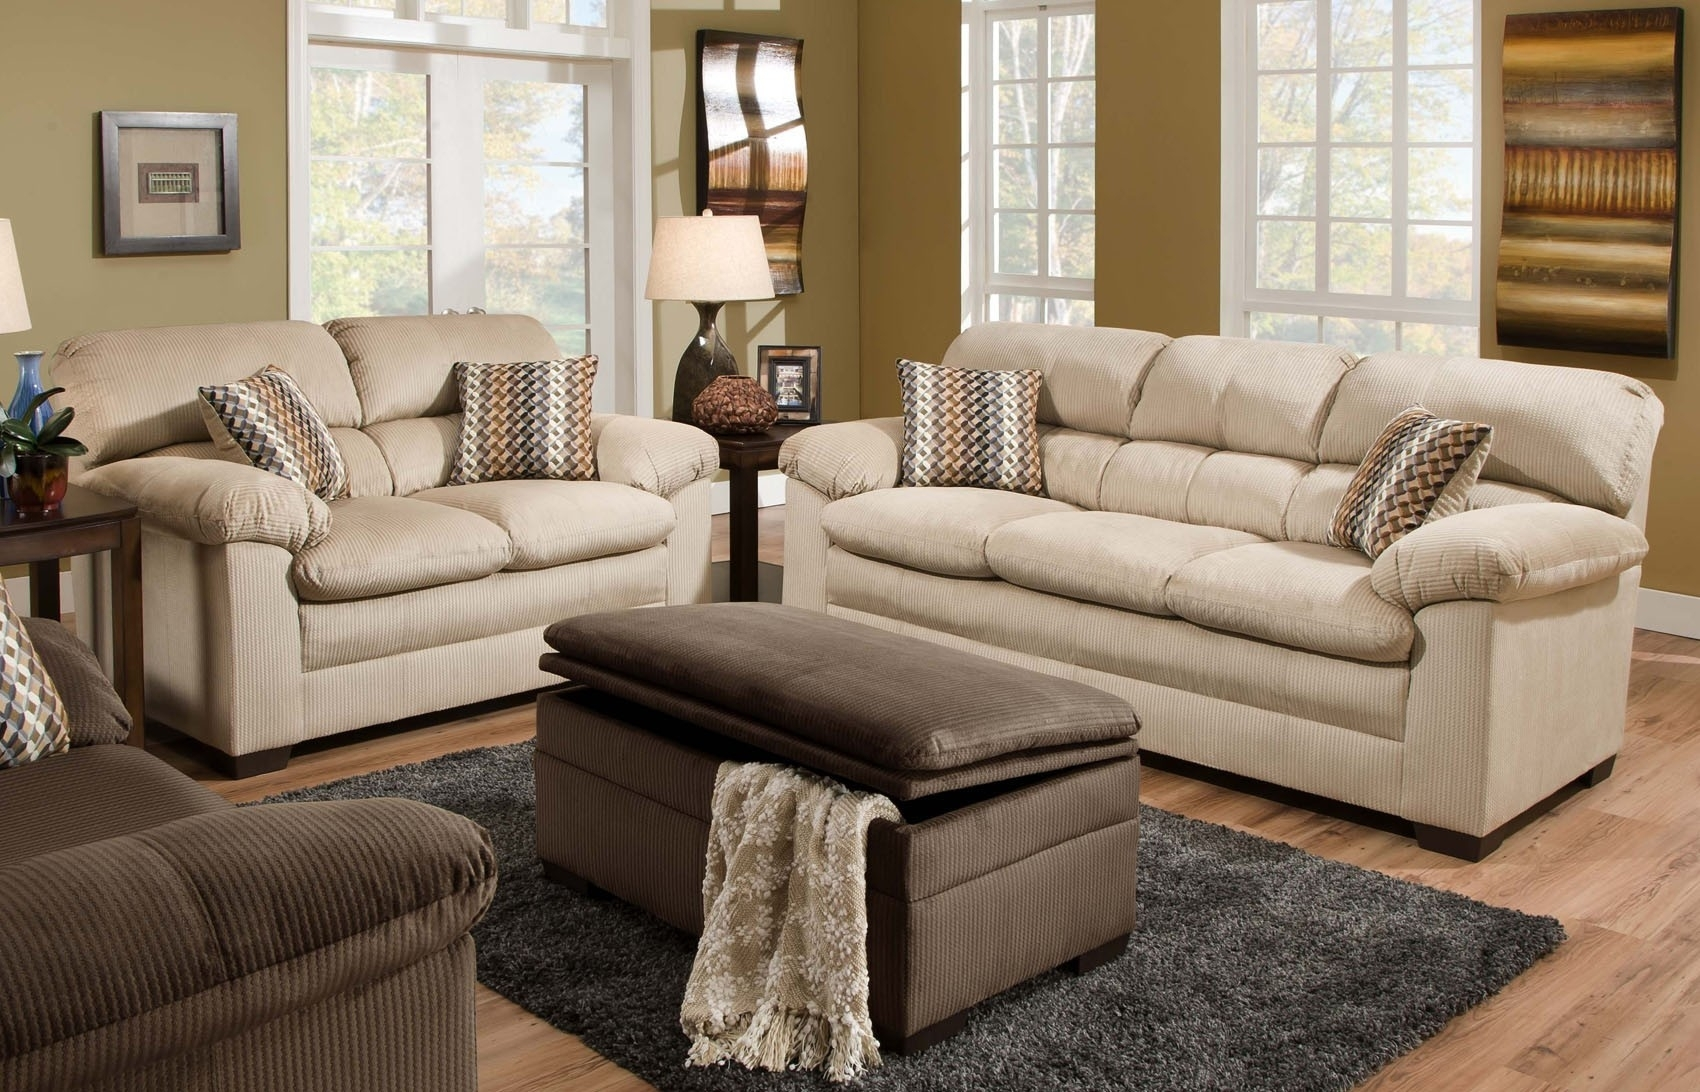 living room furniture orange county 10 choices of orange county sofas sofa ideas 22072